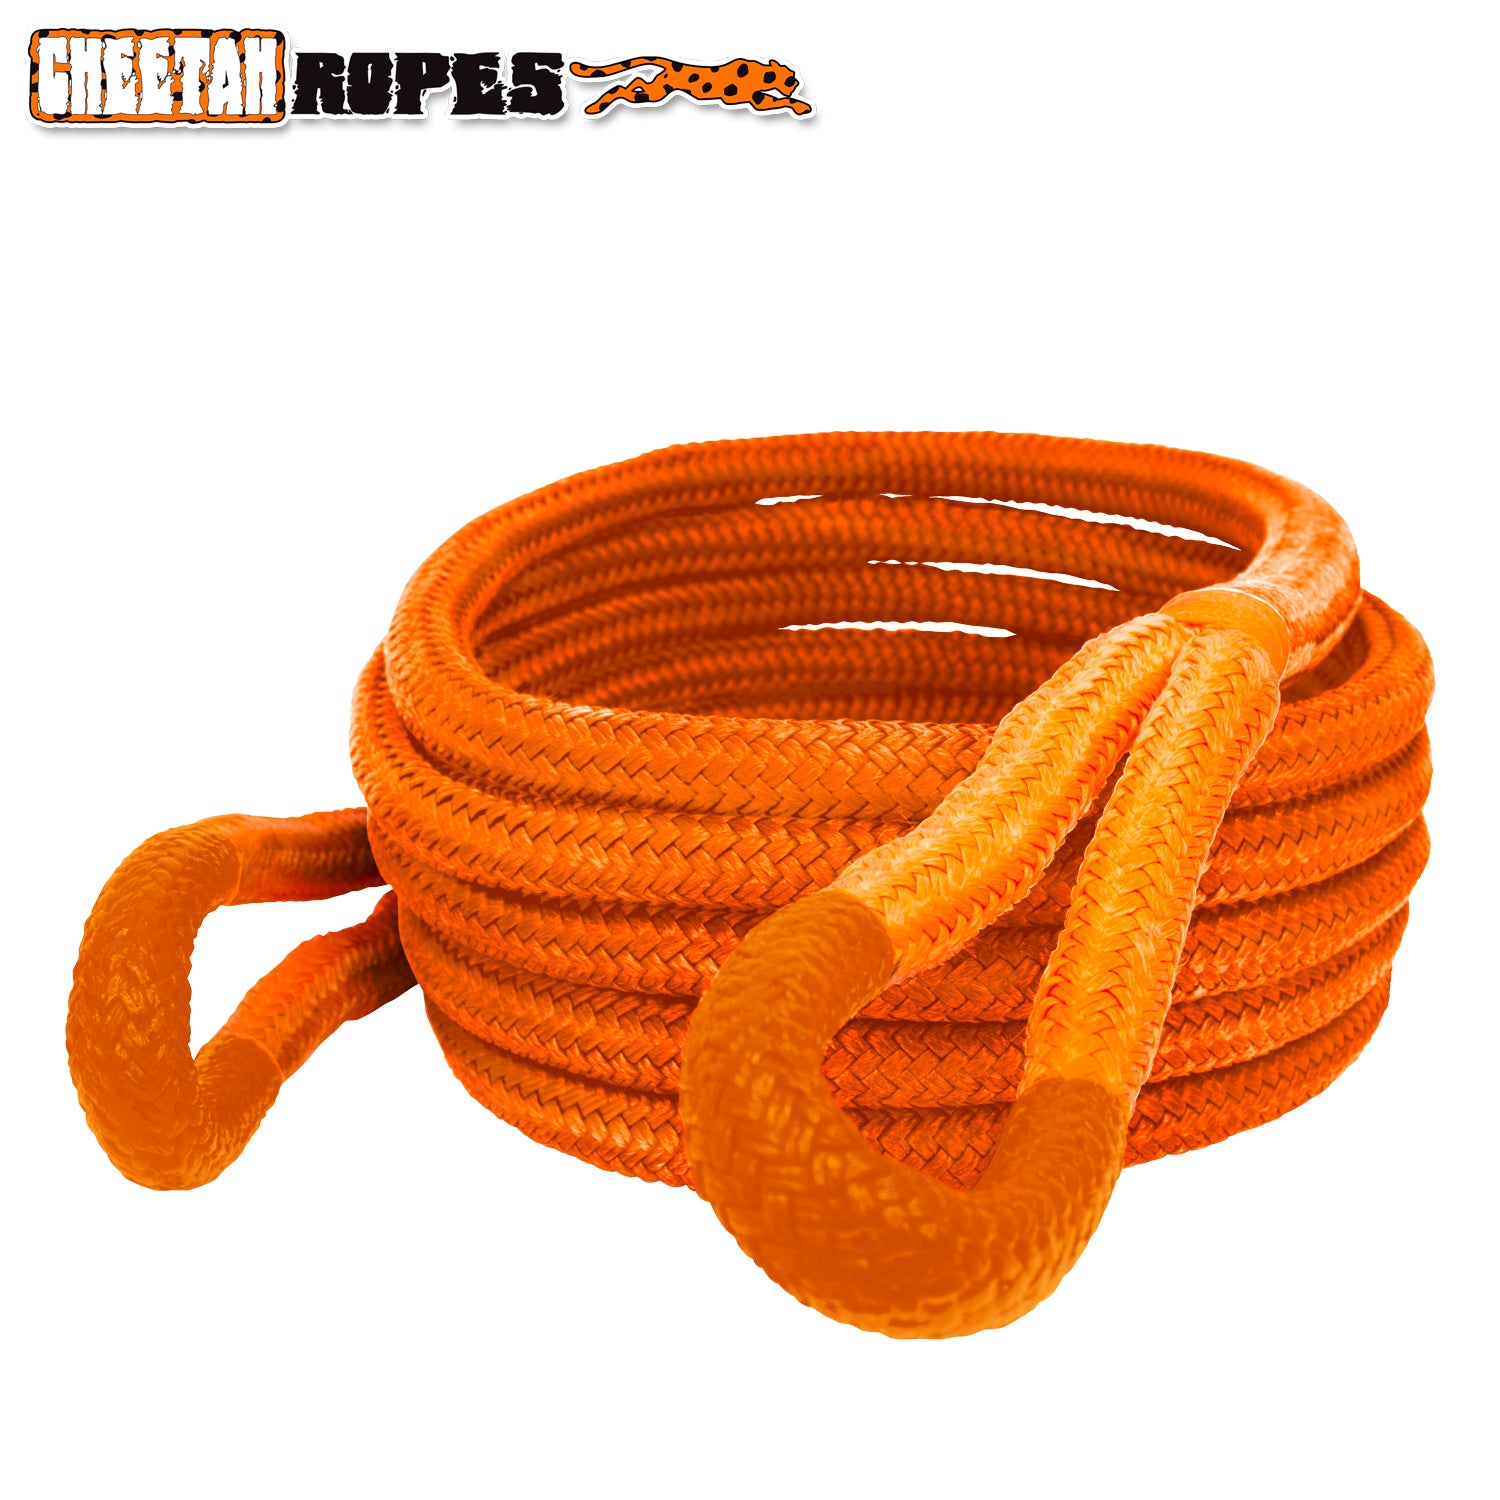 "2"" Cheetah Rope - Kinetic Energy Recovery Rope"